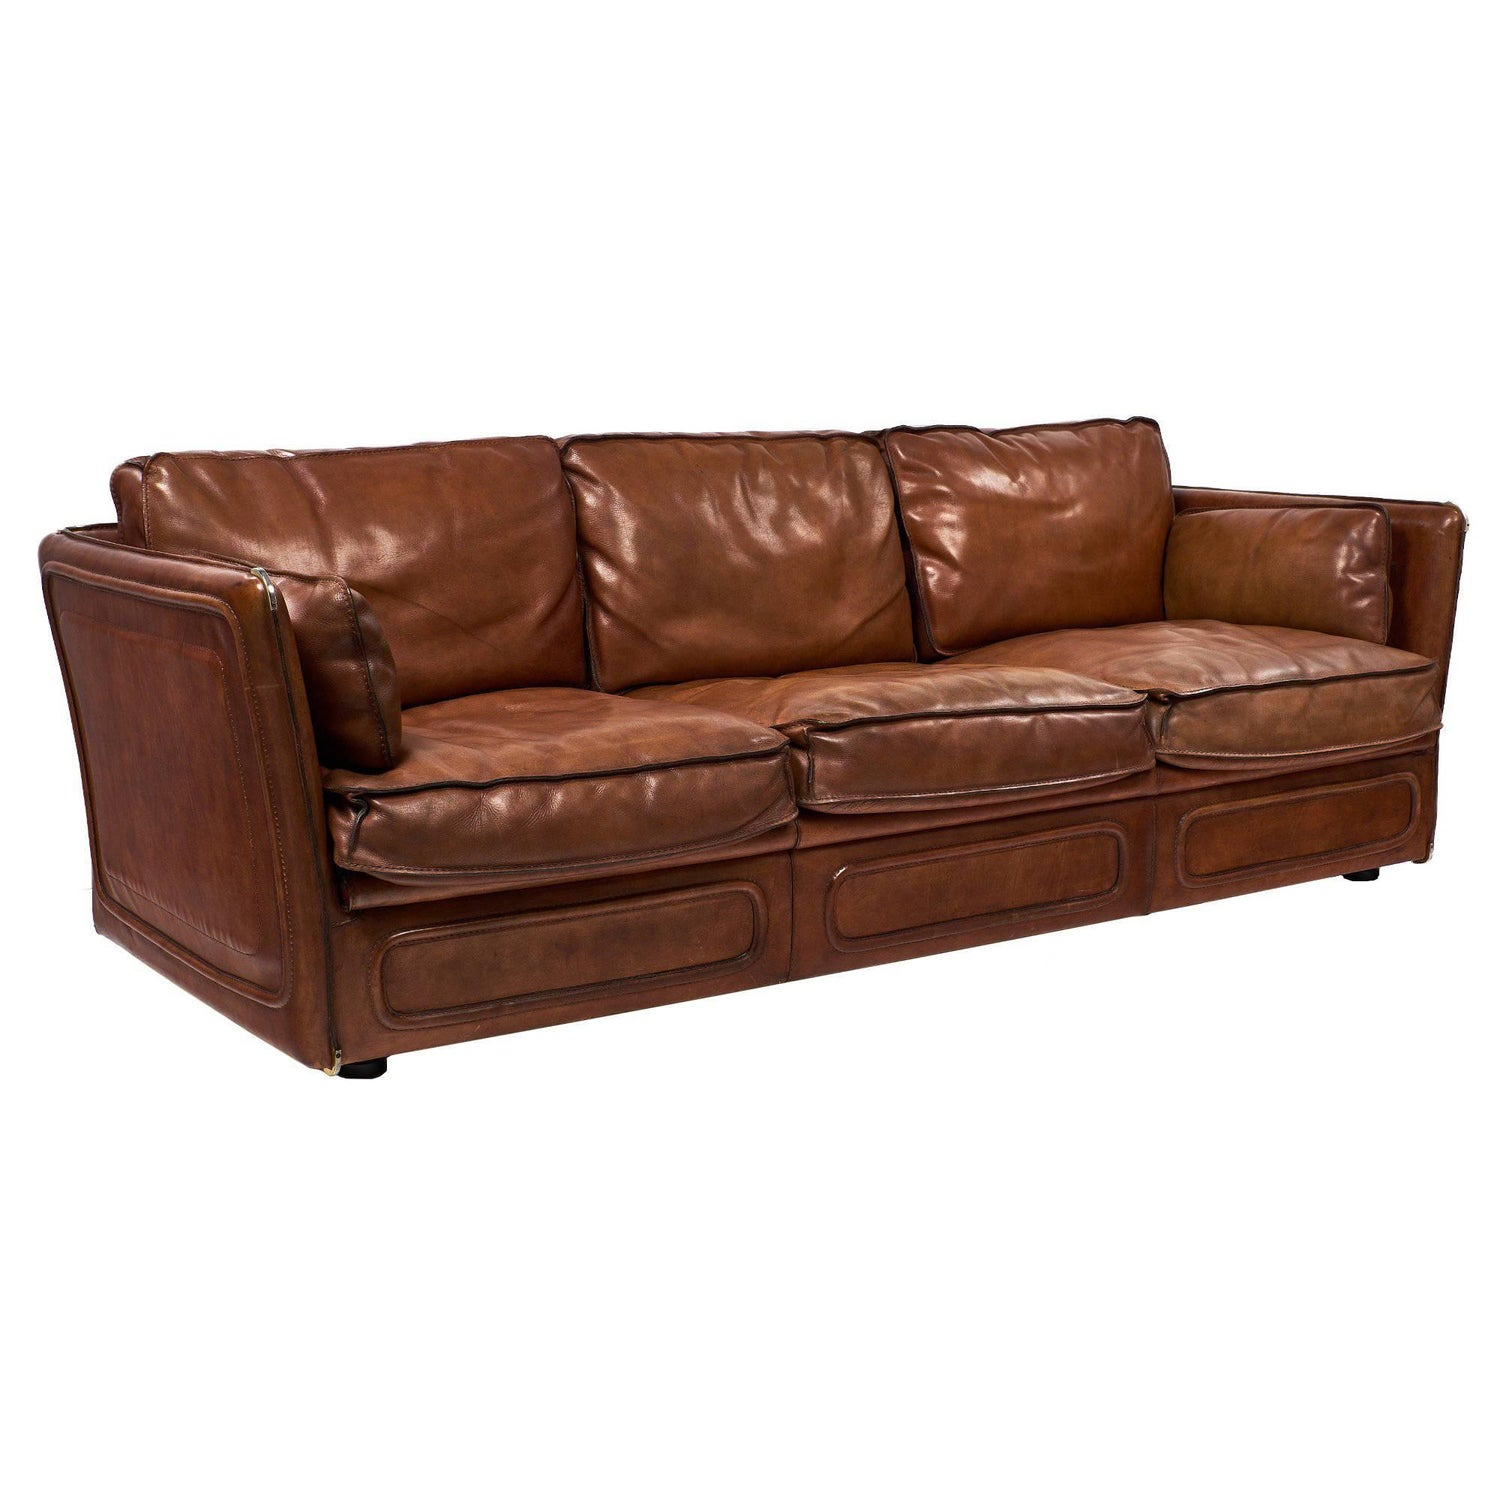 French Buffalo Leather Equestrian Style Sofa For Sale at 1stdibs